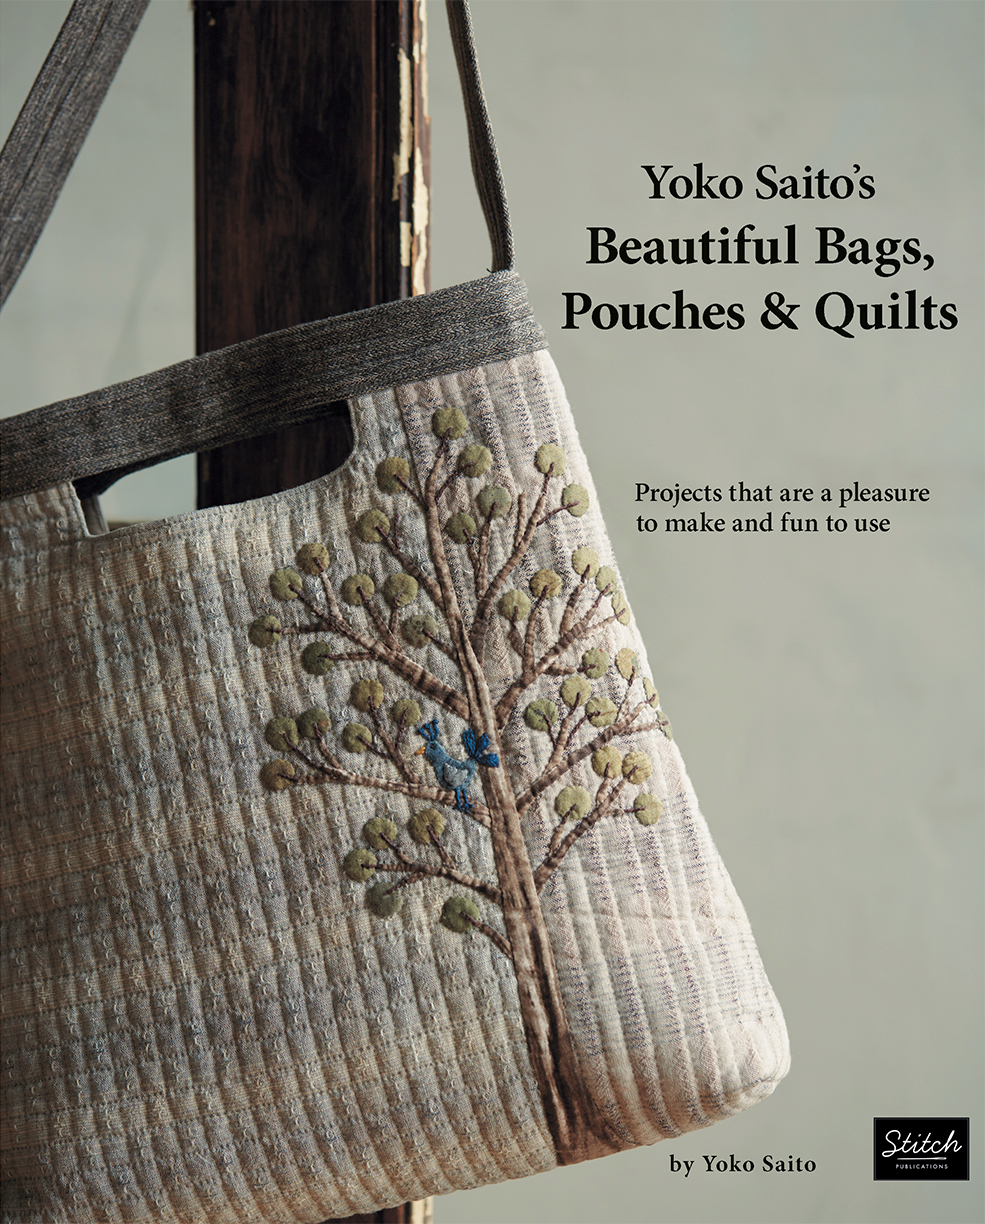 Yoko Saito's Beautiful Bags, Pouches & Quilts